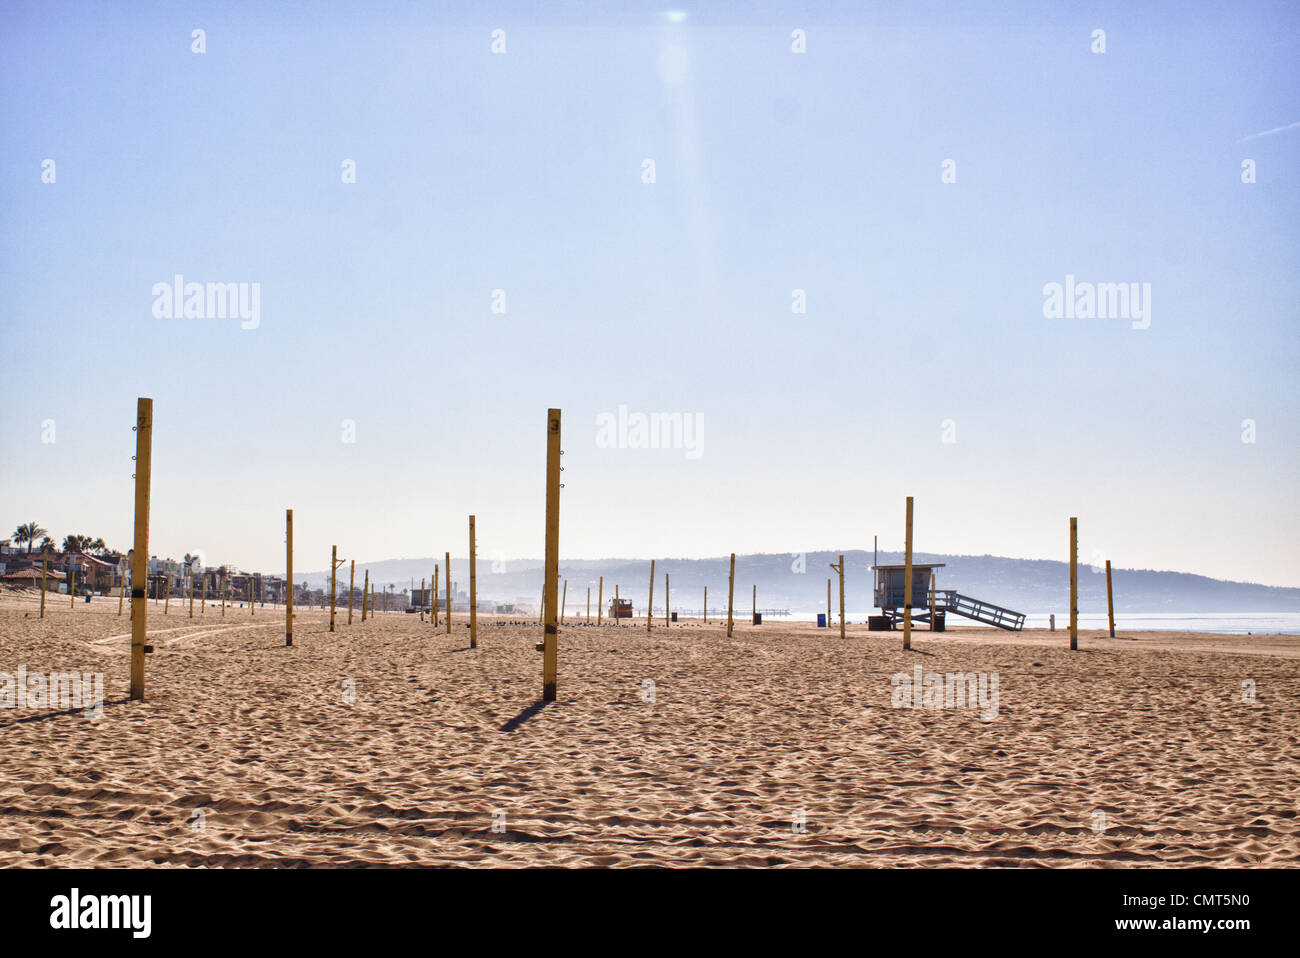 Landscape at Manhattan Beach, Los Angeles, California, USA - Stock Image